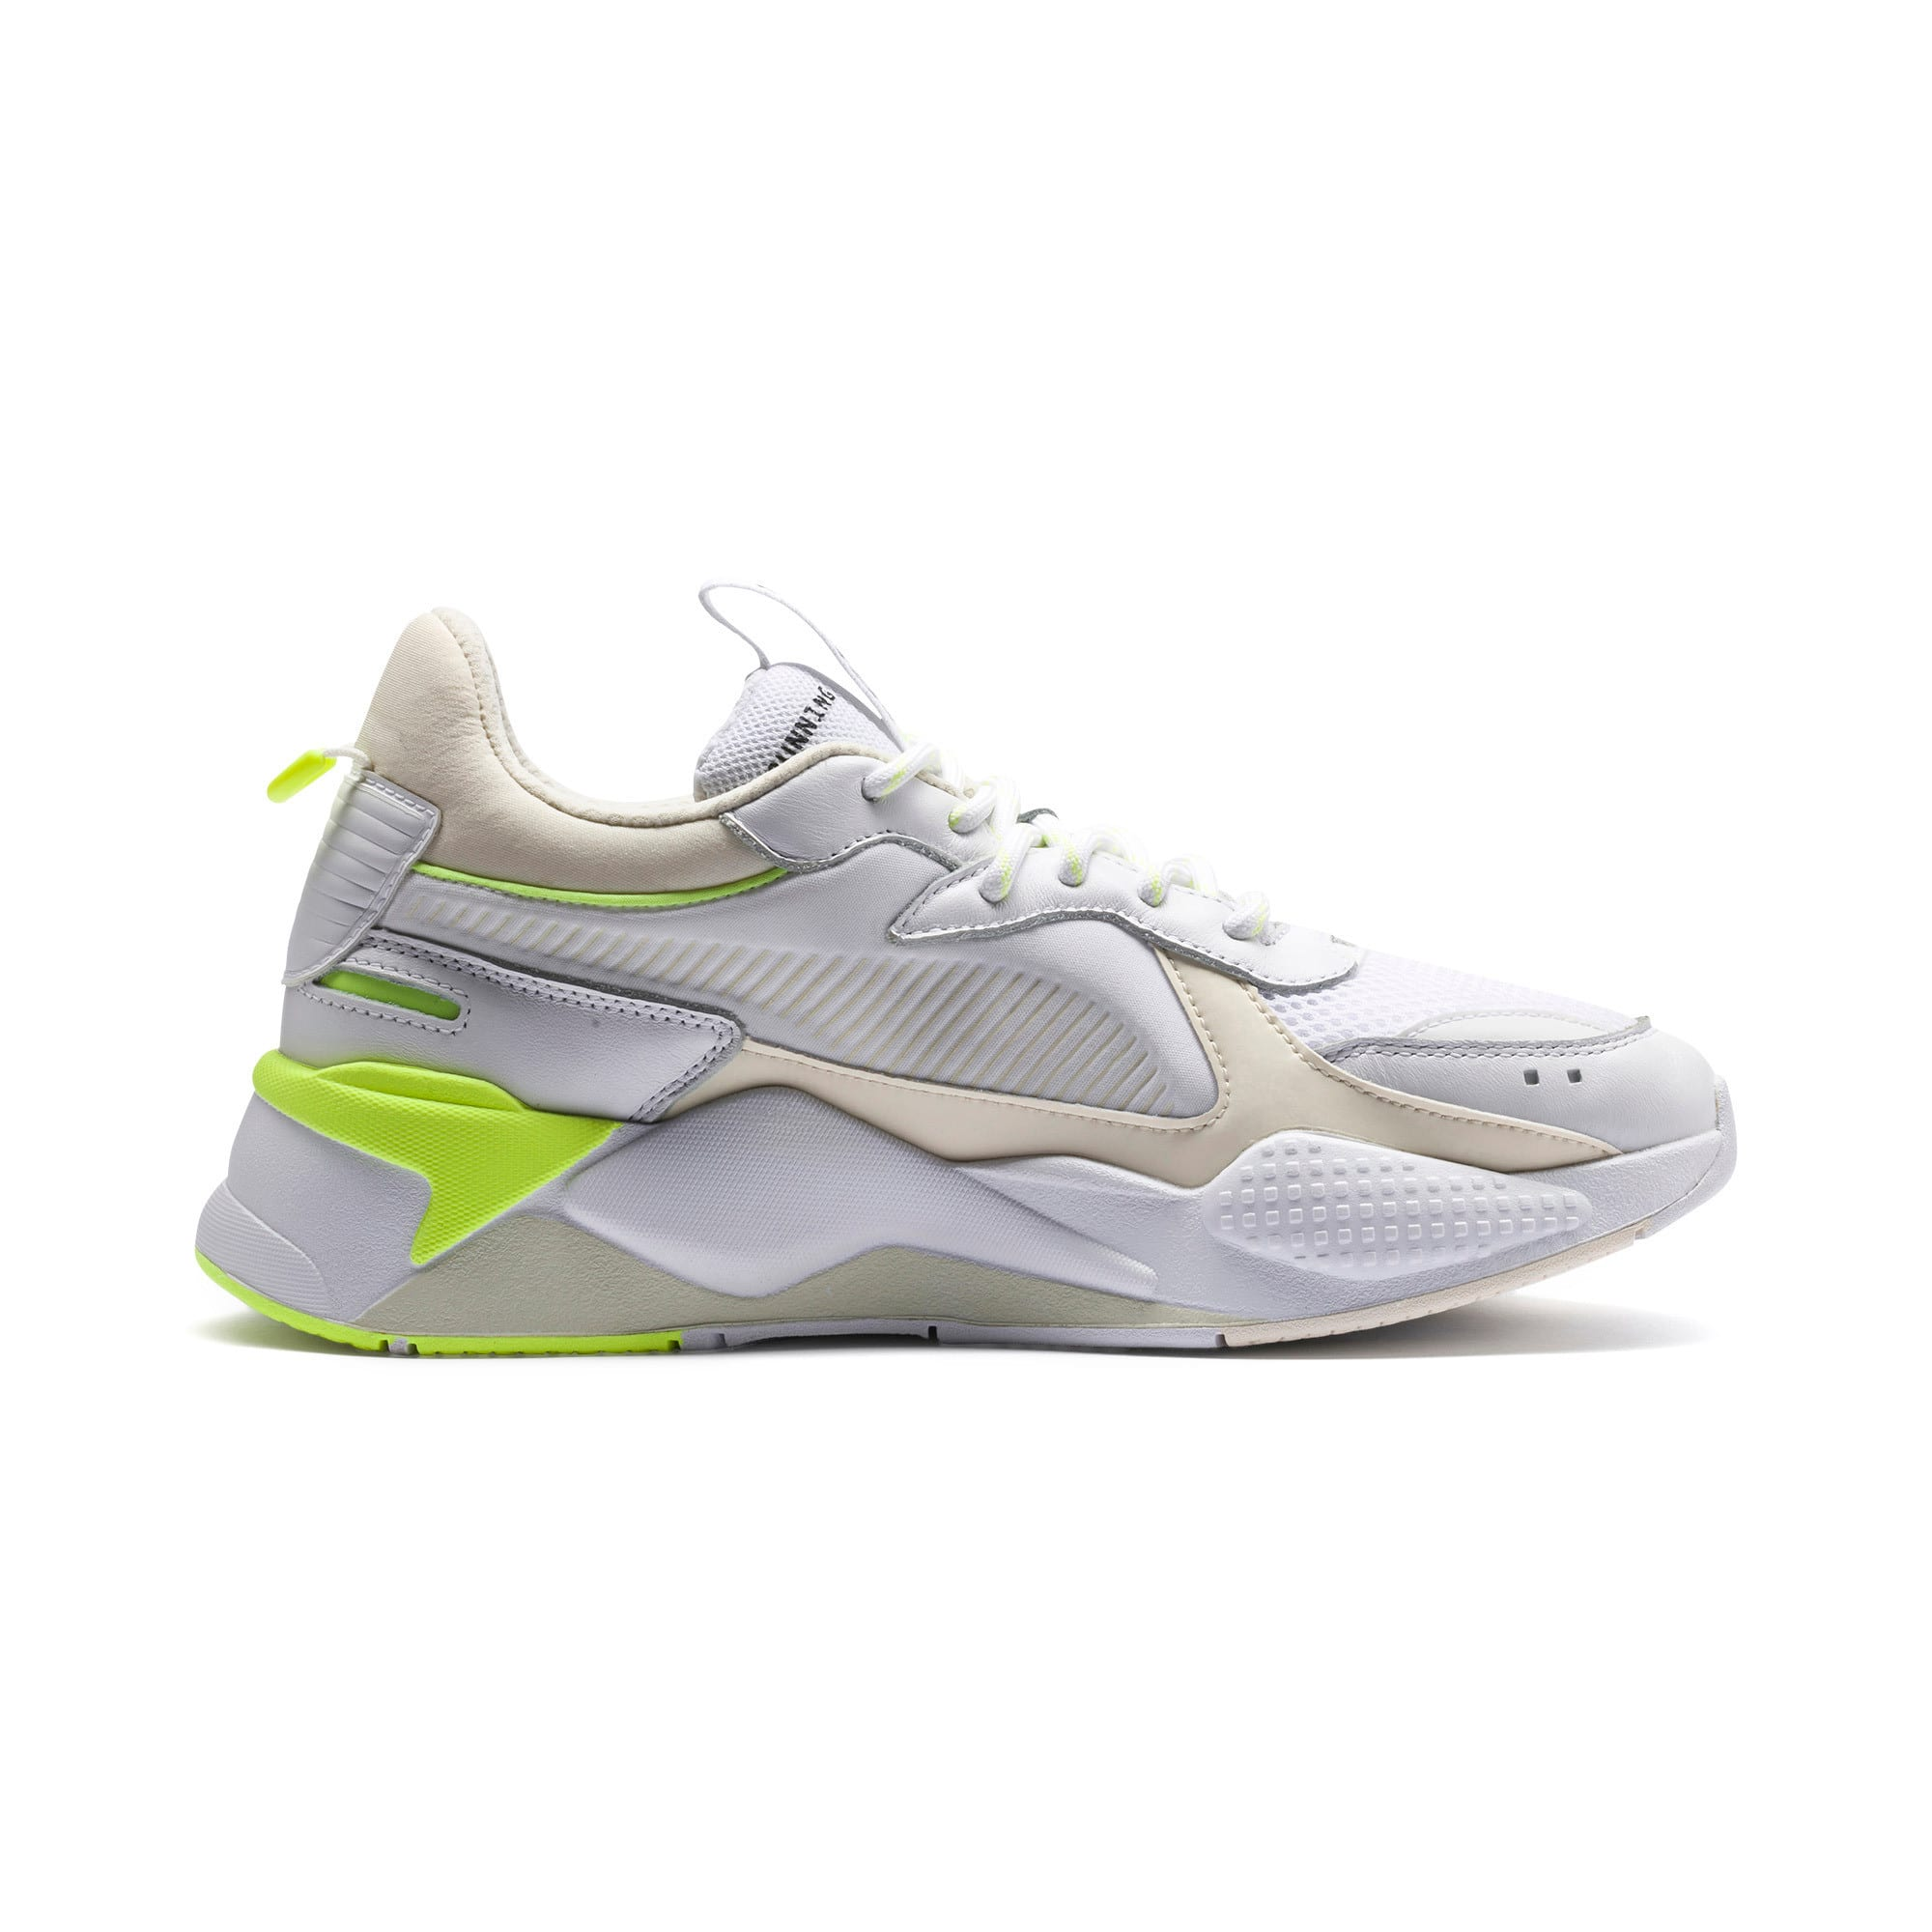 Thumbnail 5 of RS-X Tracks Trainers, Puma White-Whisper White, medium